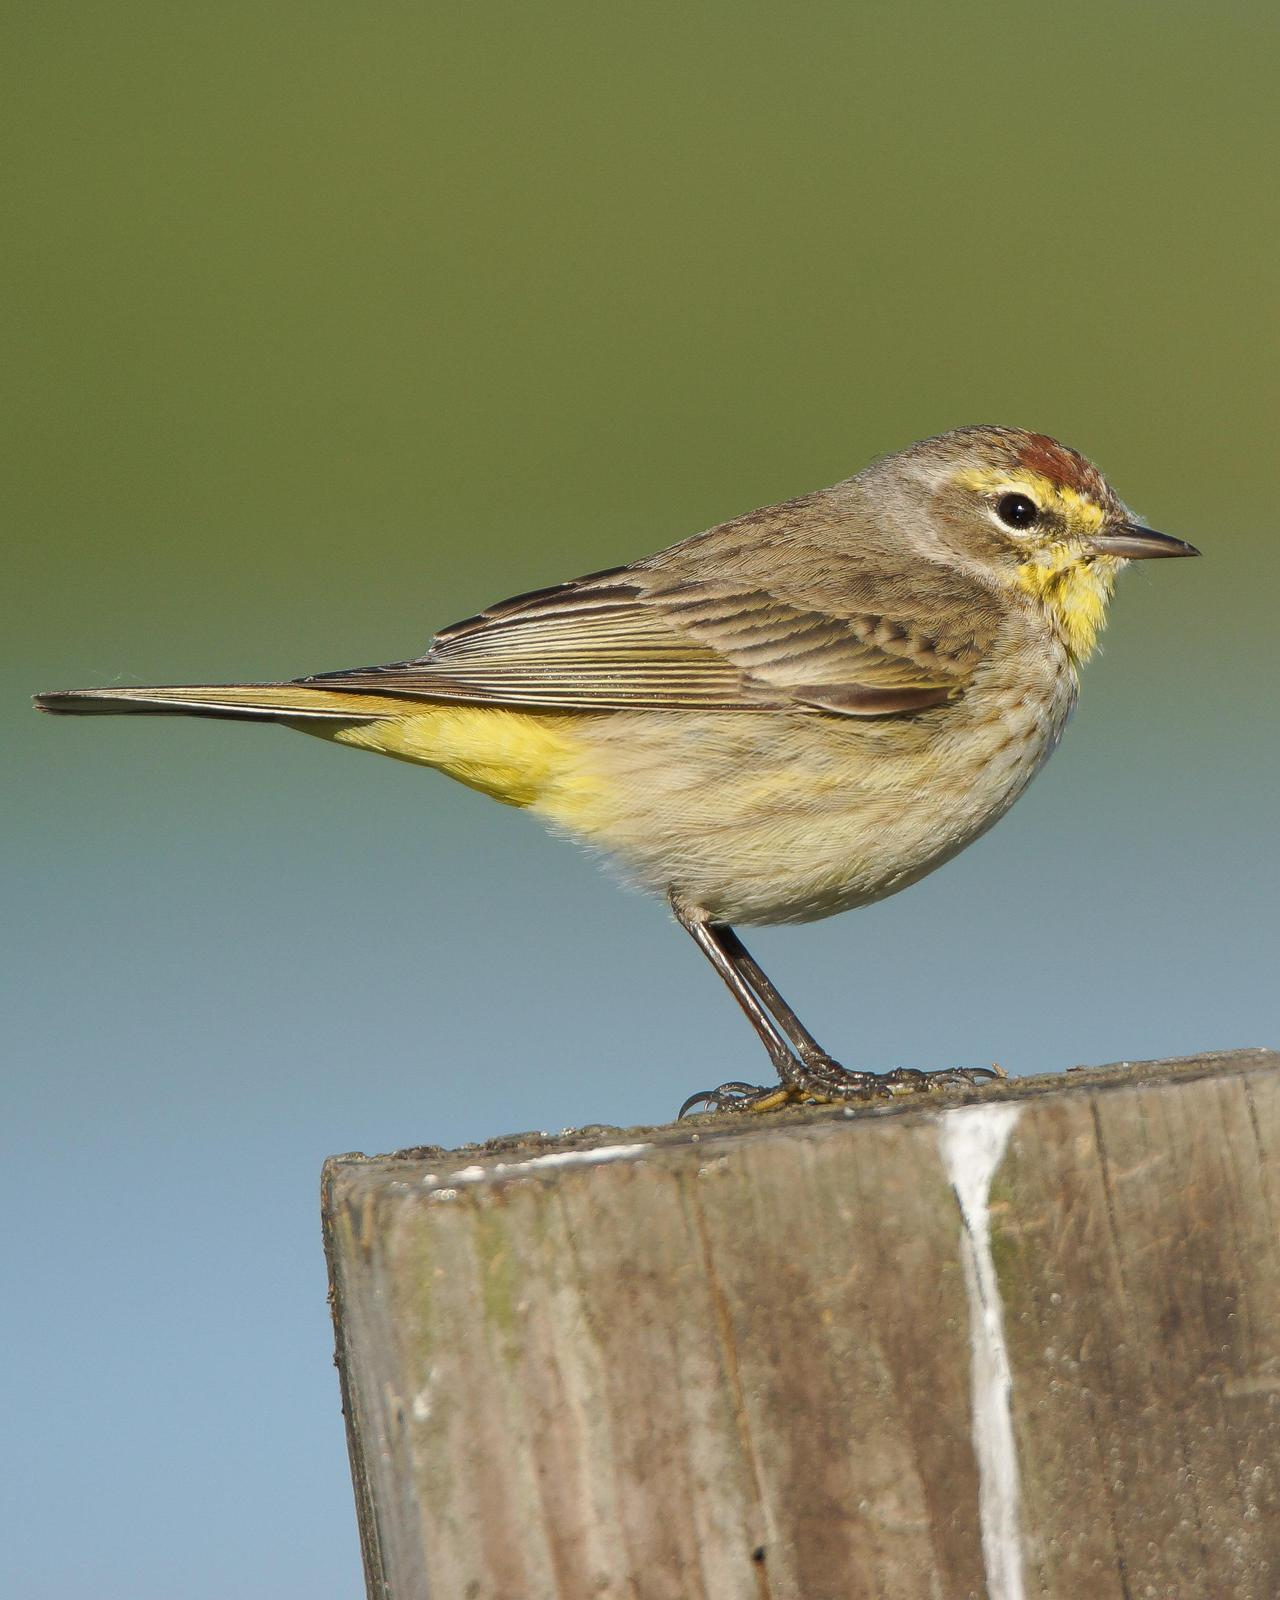 Palm Warbler Photo by Steve Percival